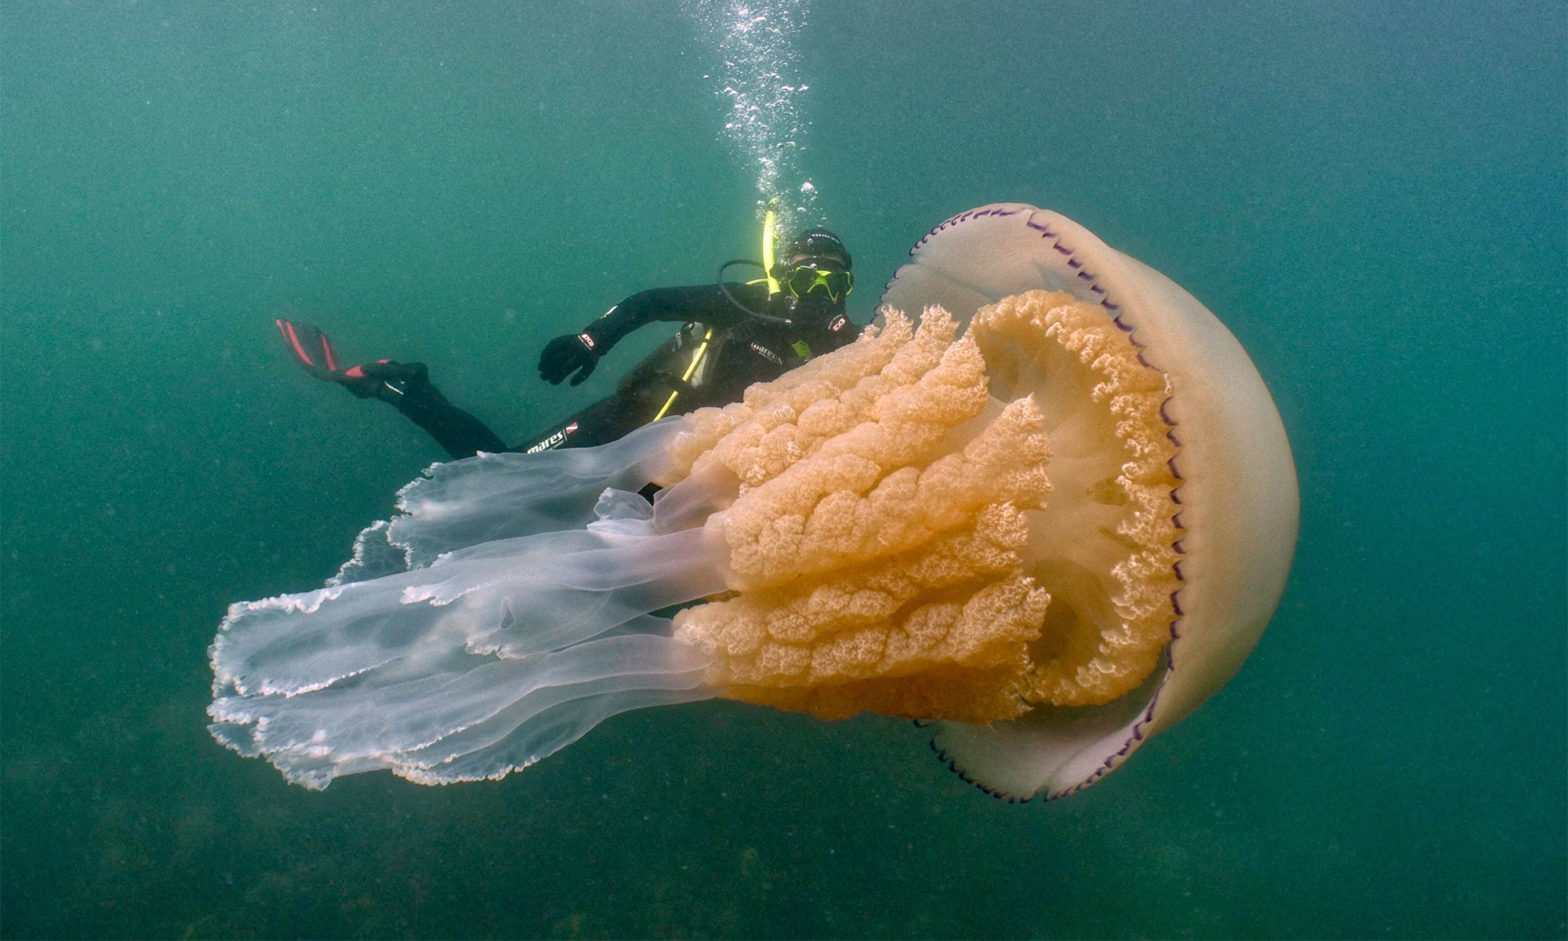 Giant-size Jellyfish Discovered In England